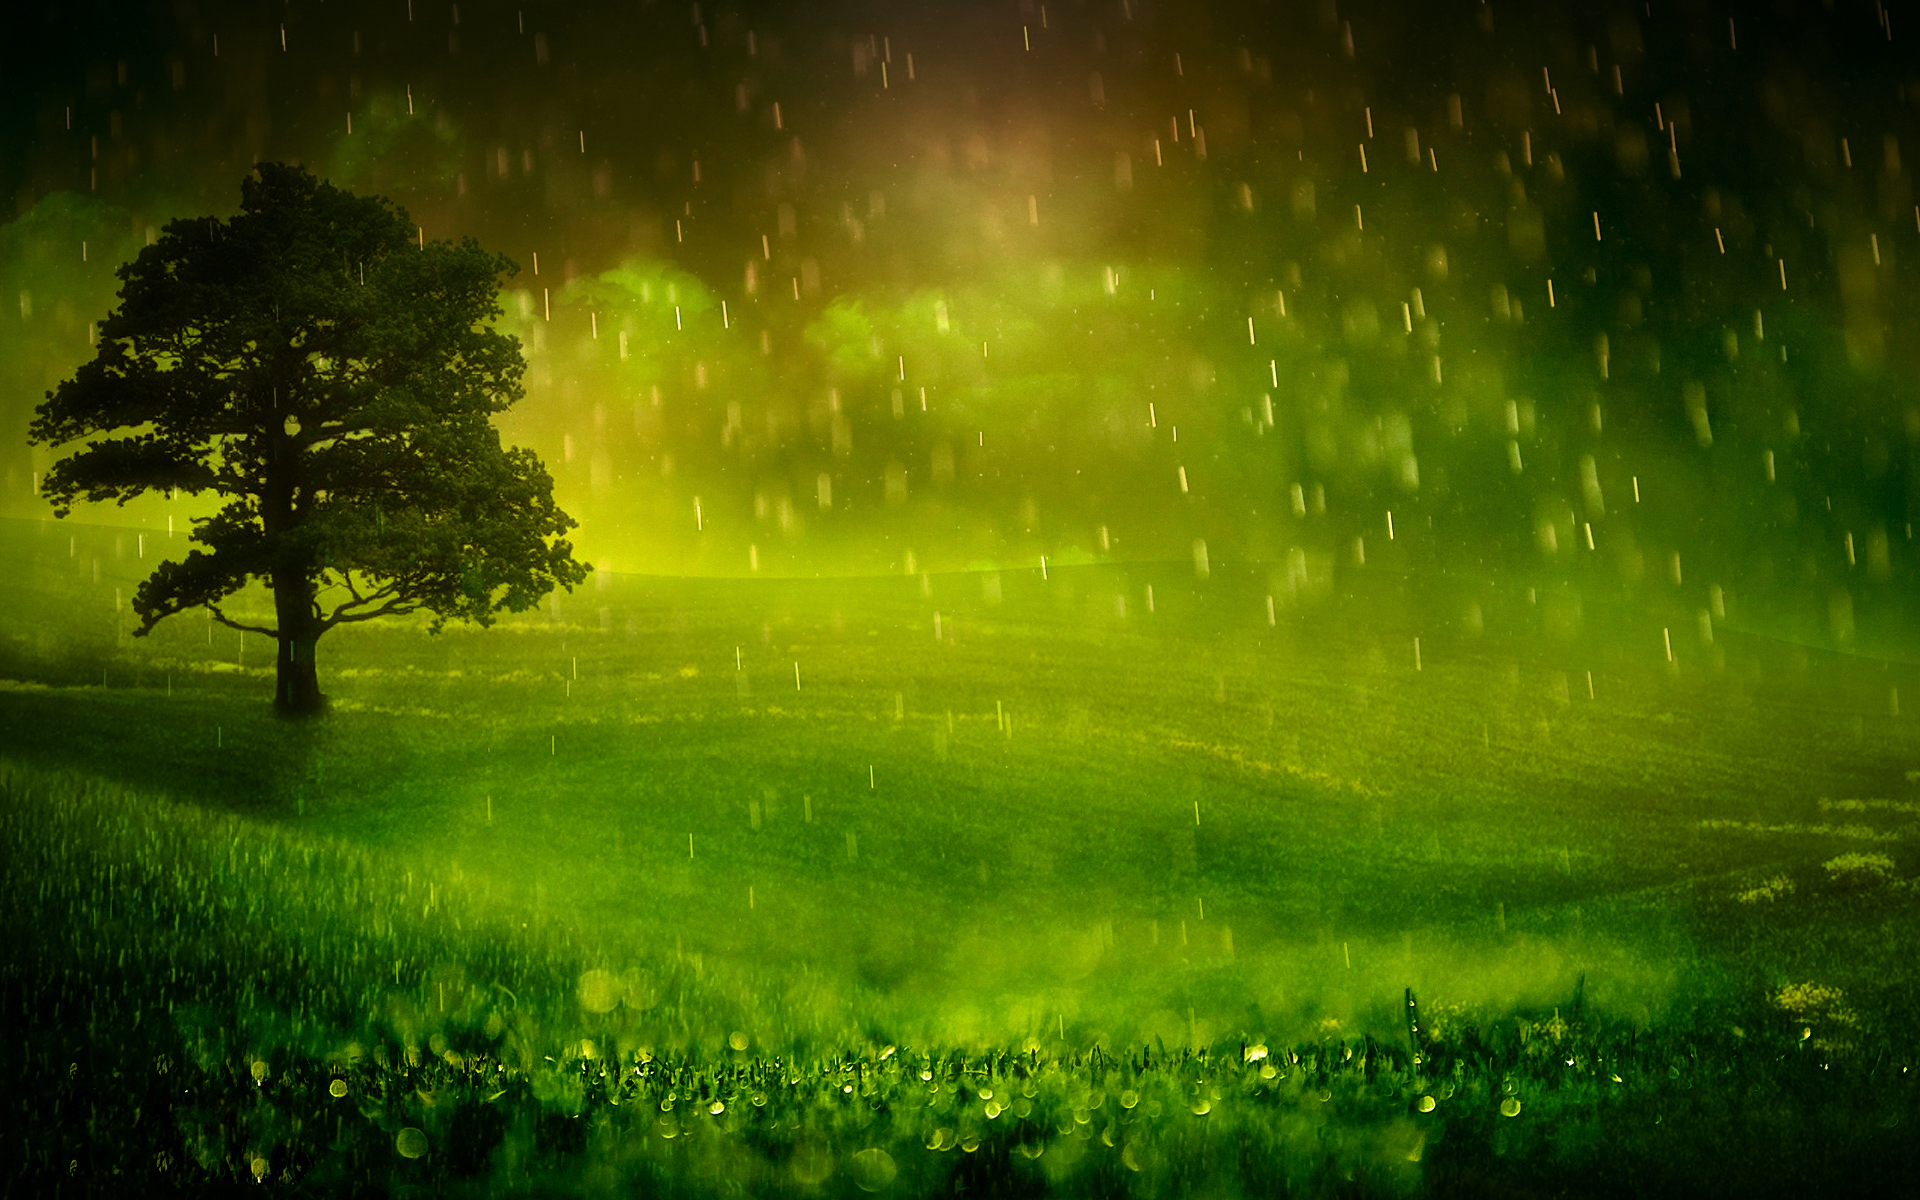 Nature Rain Wallpaper